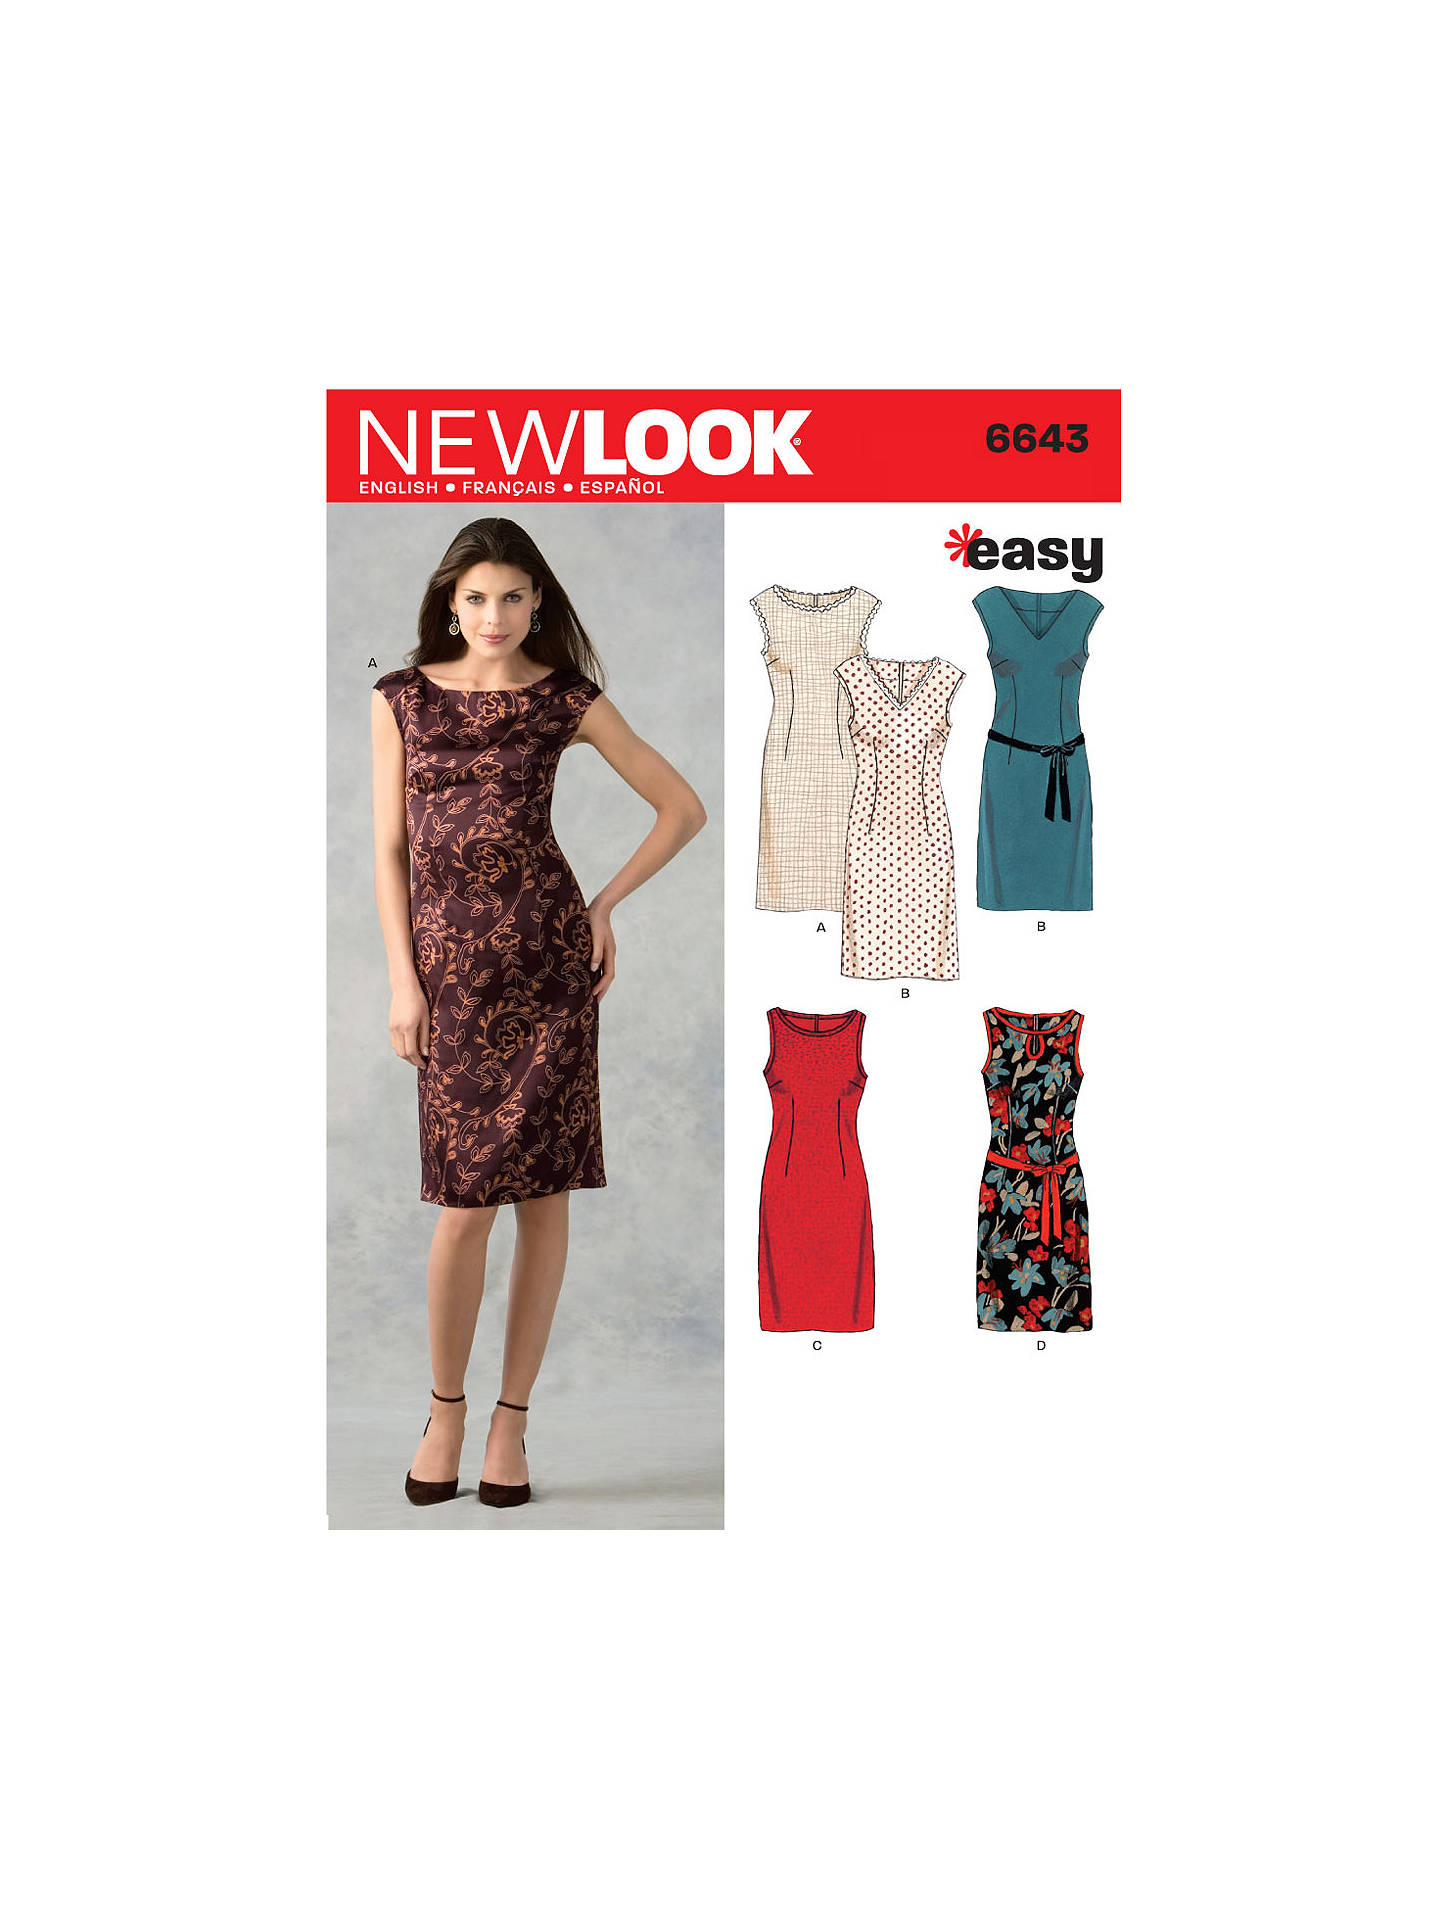 New Look Women\'s Dresses Sewing Patterns, 6643 at John Lewis & Partners